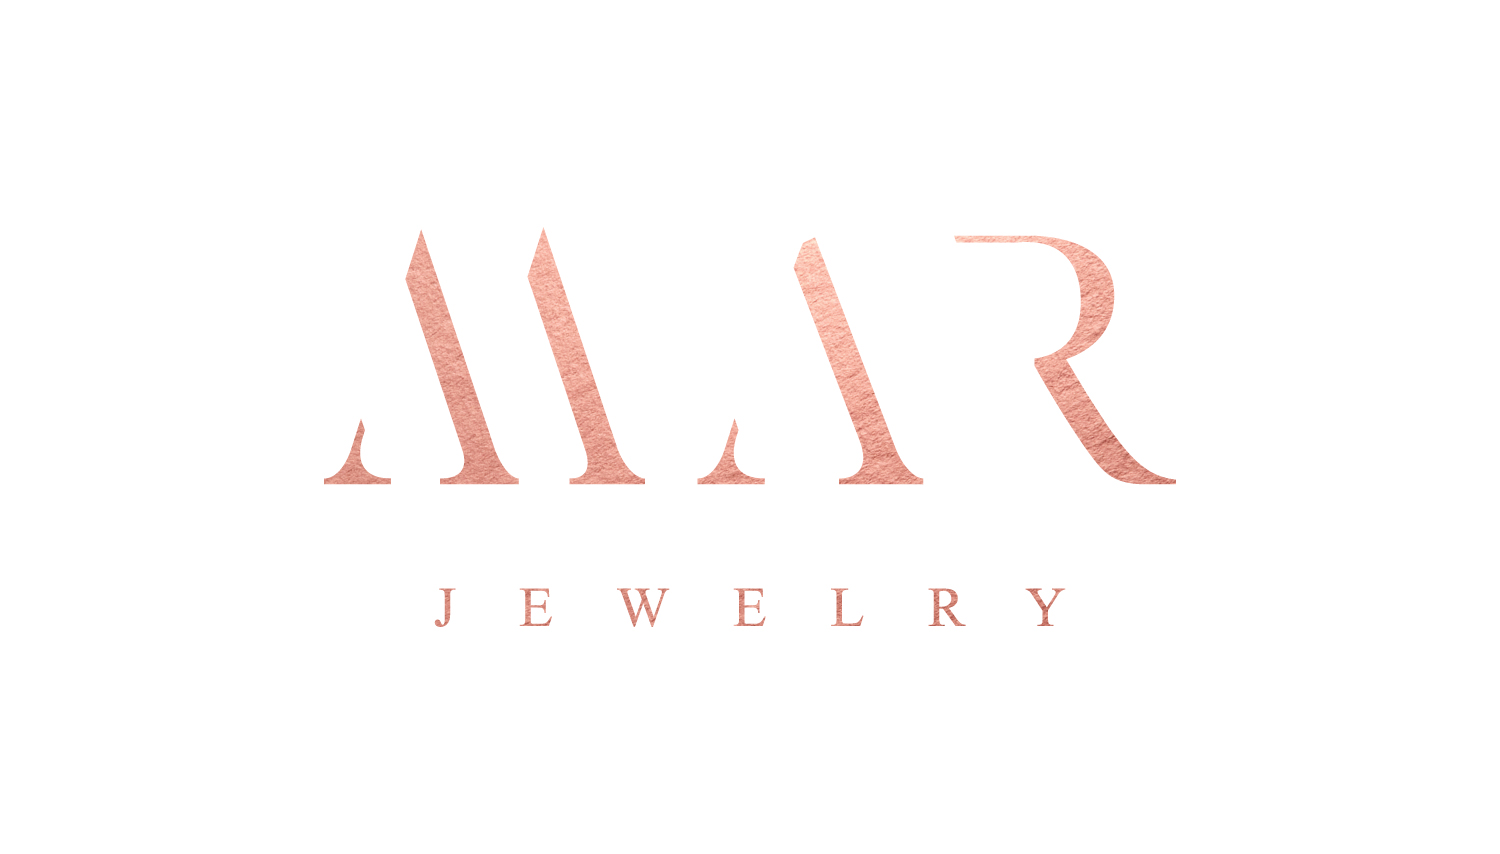 Mar jewelry design